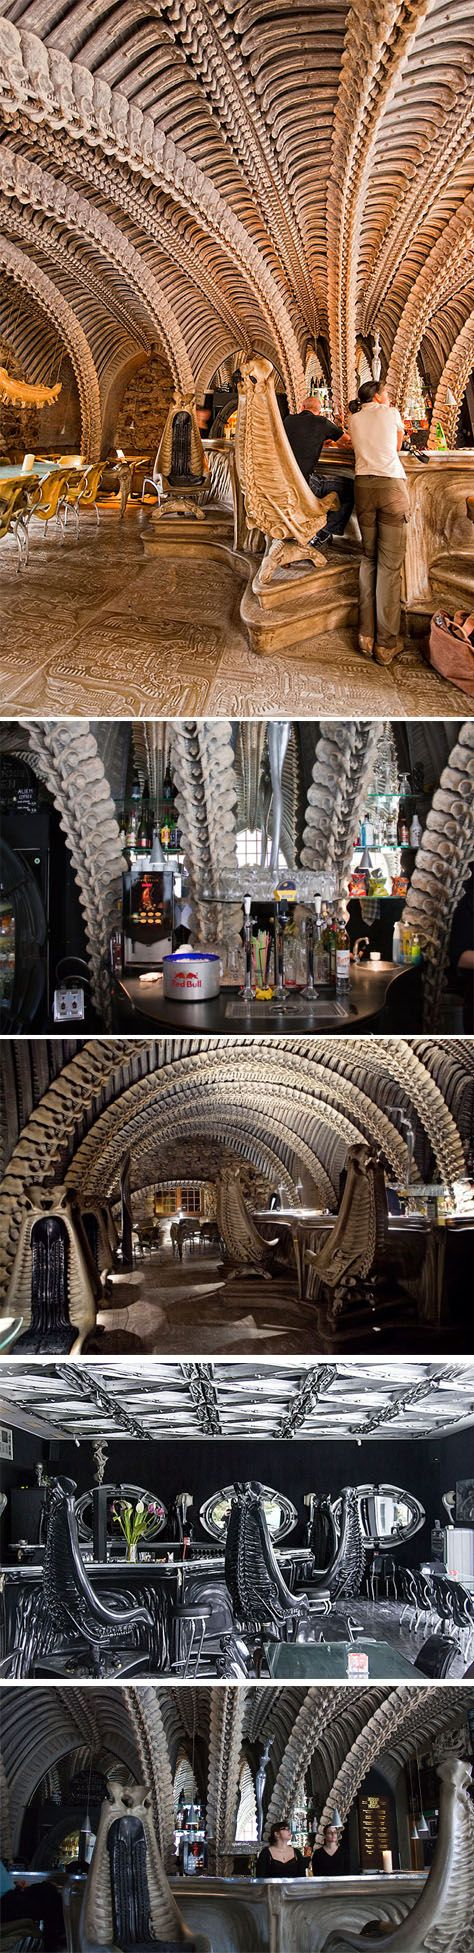 HR Giger Museum Bar, Gruyeres, Switzerland by HR Giger. -Alien movie-